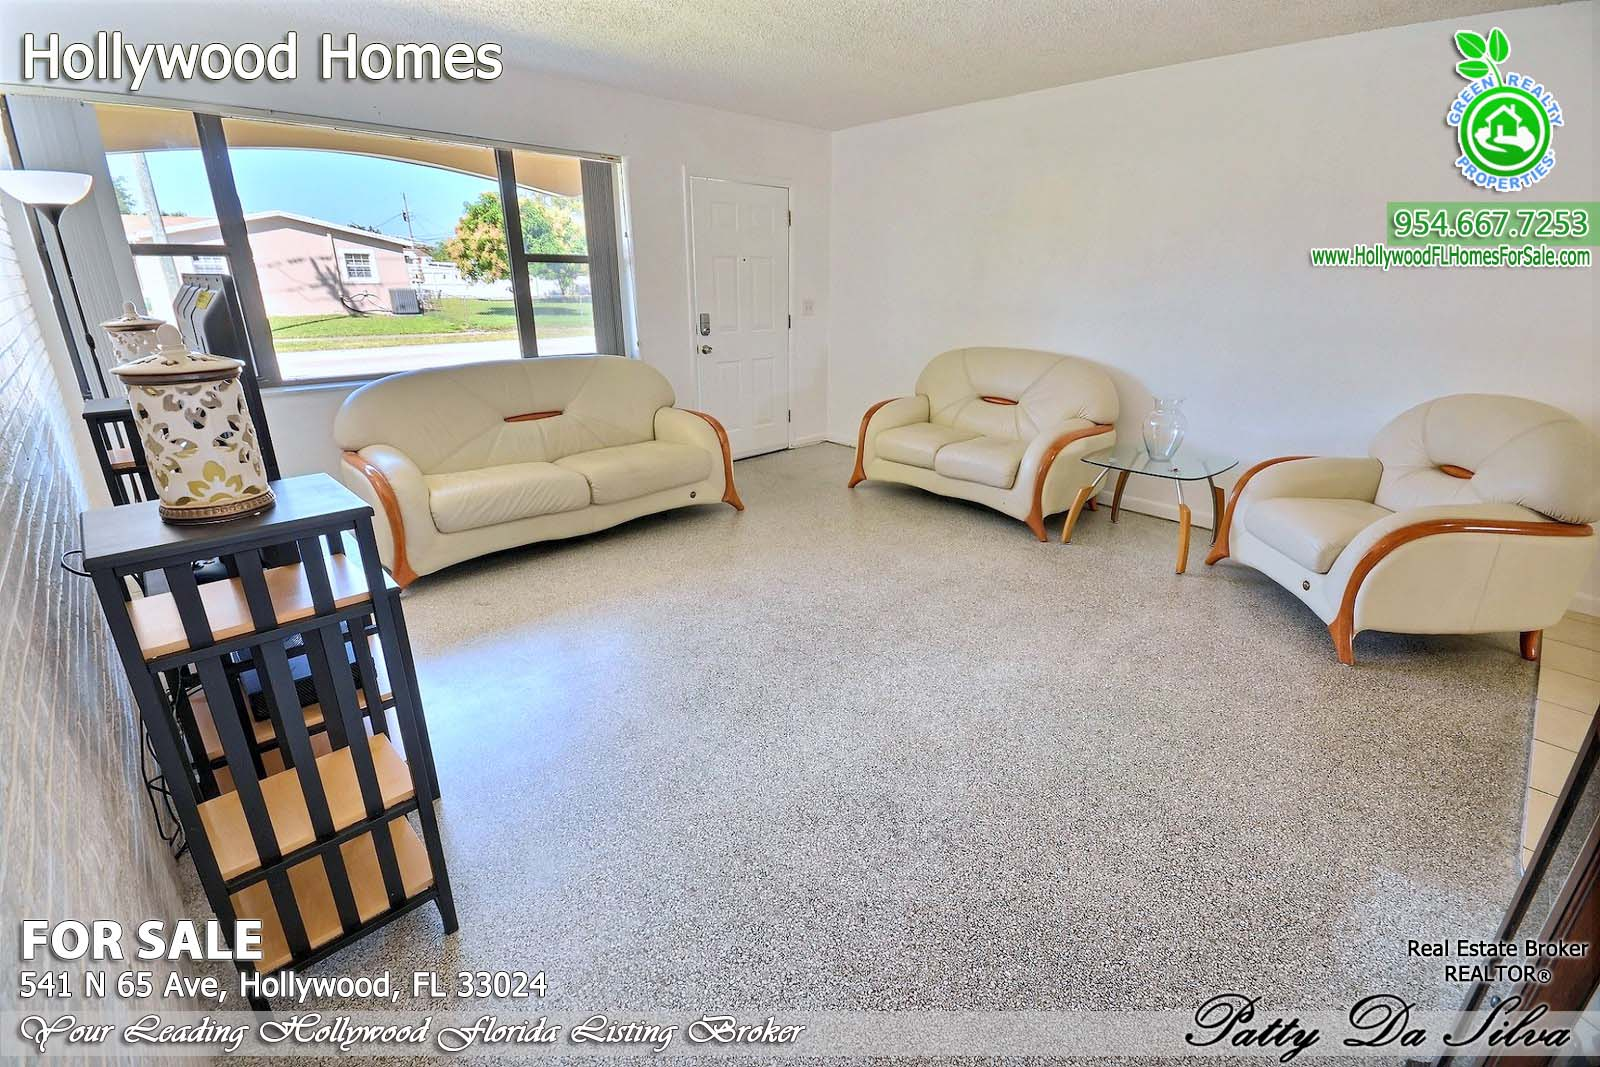 Homes For Sale in Hollywood Florida (19)